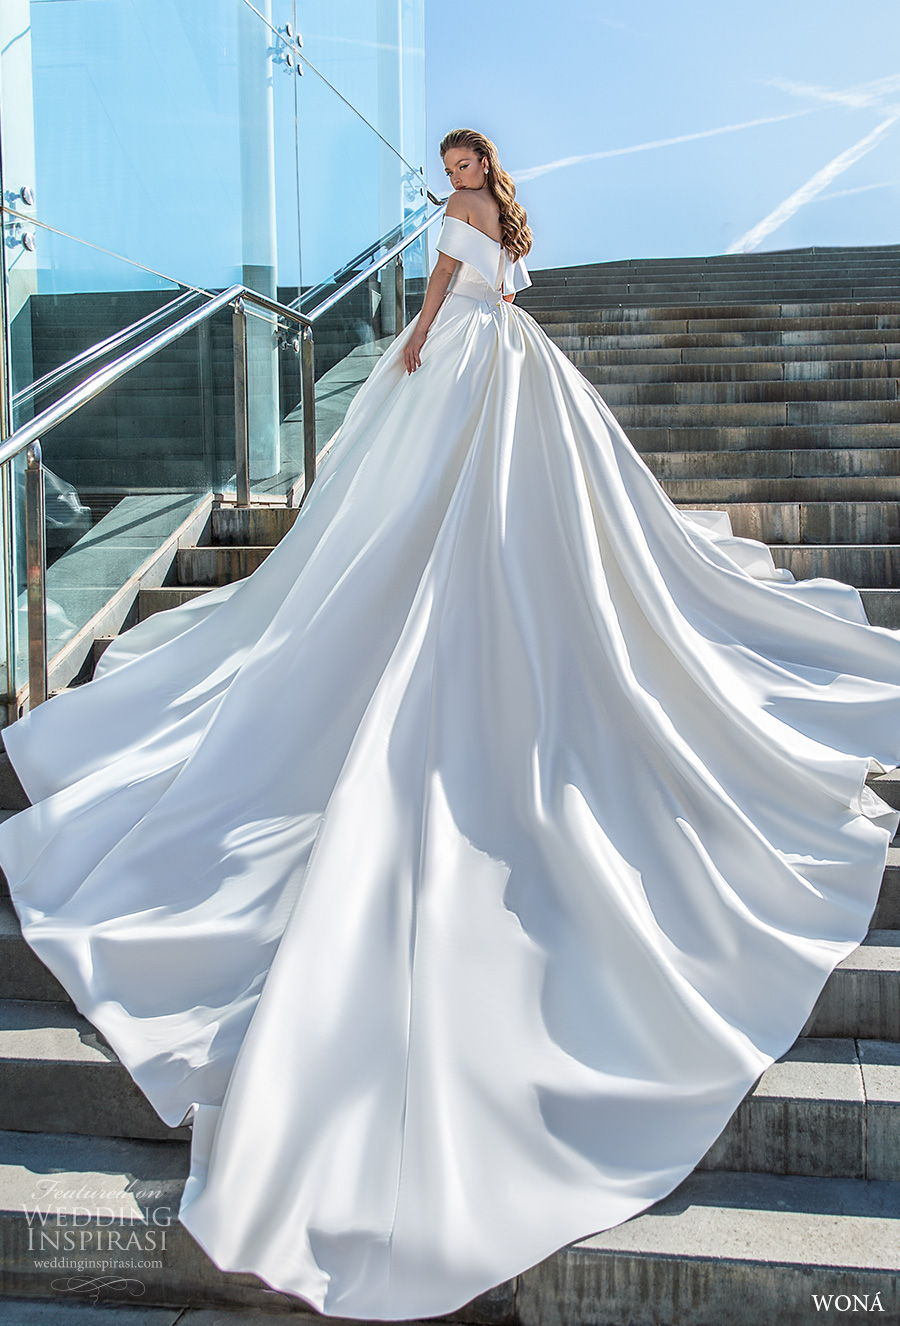 wona 2020 diva bridal off the shoulder v neck simple minimalist princess ball gown a  line wedding dress mid back royal train (16) bv